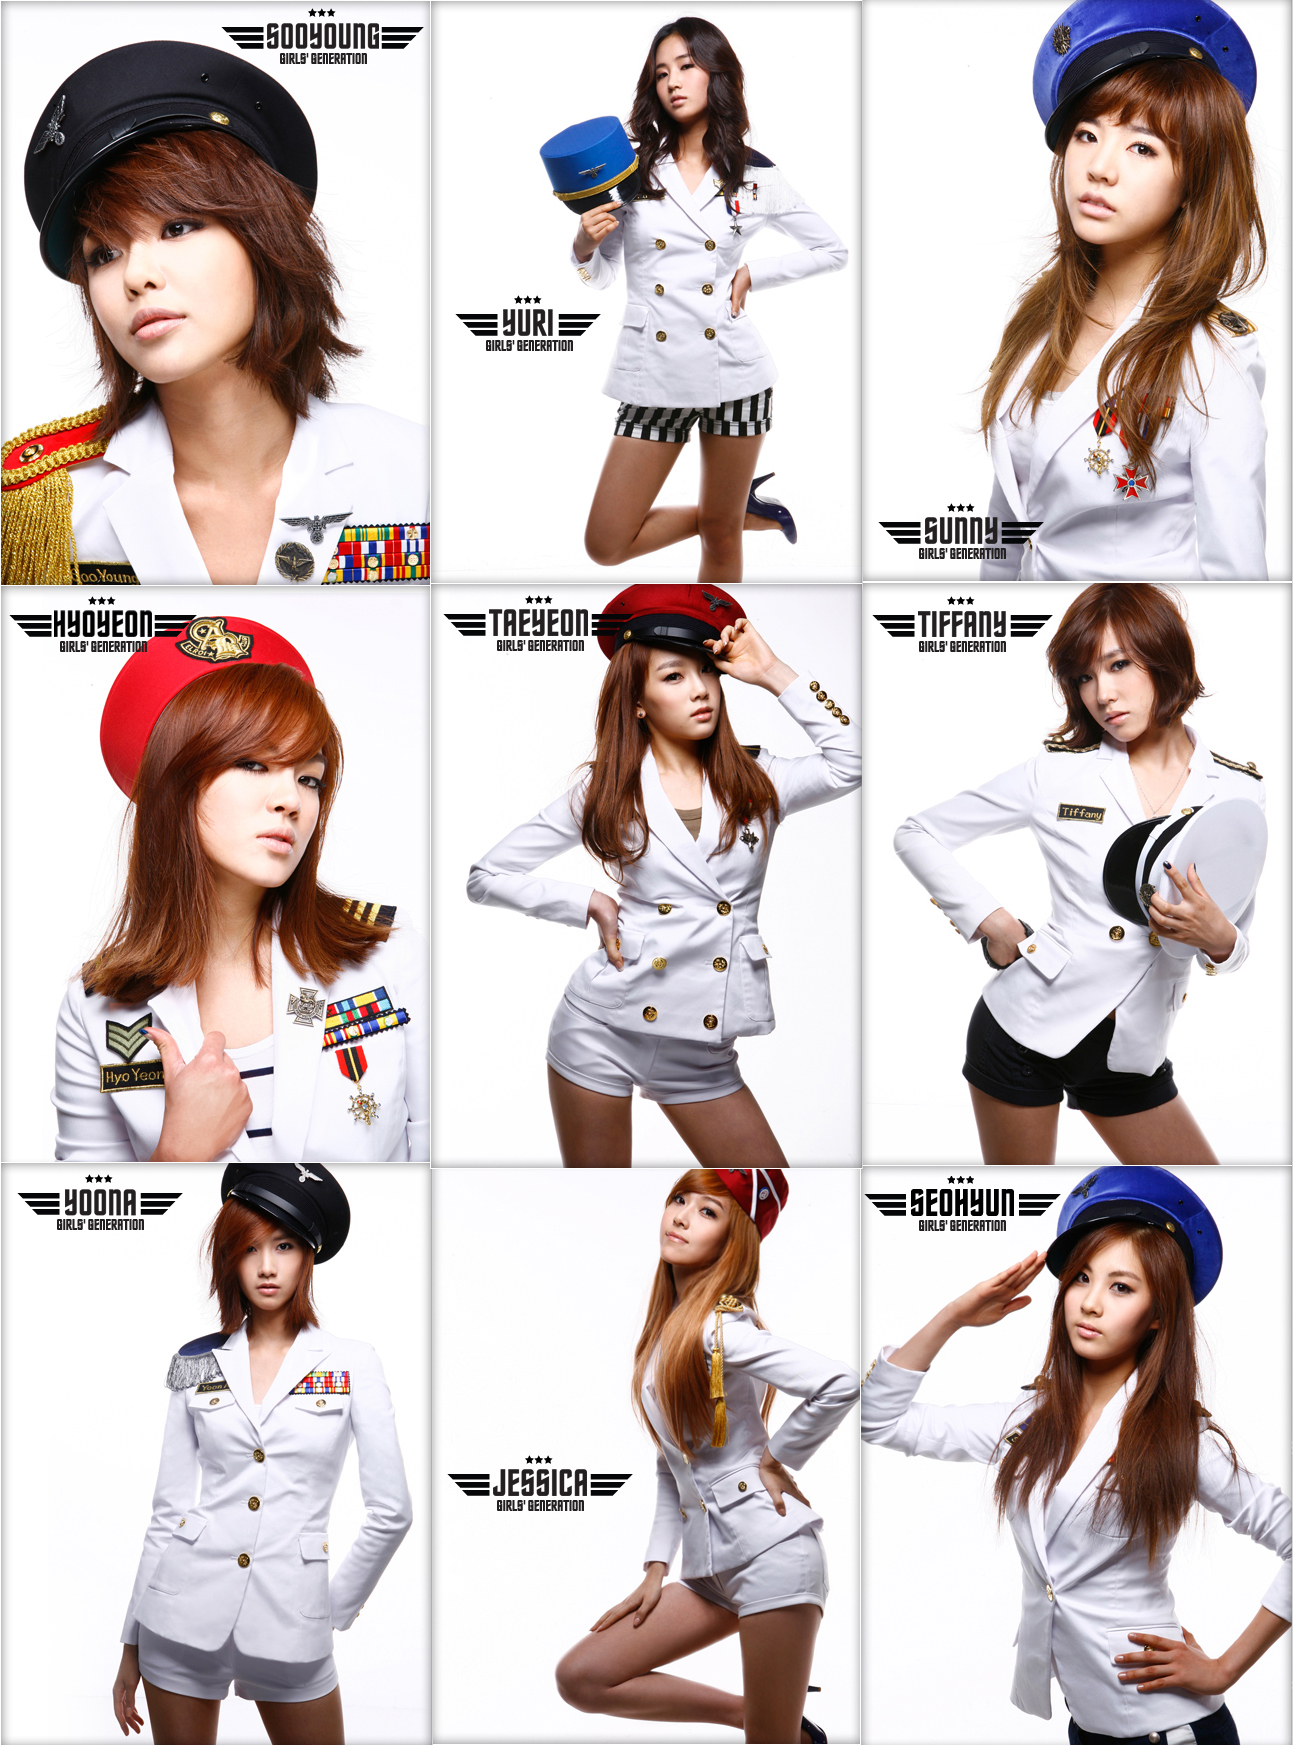 How Tall Are Snsd Members http://snsdkorean.com/2011/08/05/from-high-school-girls-to-definitive-women/